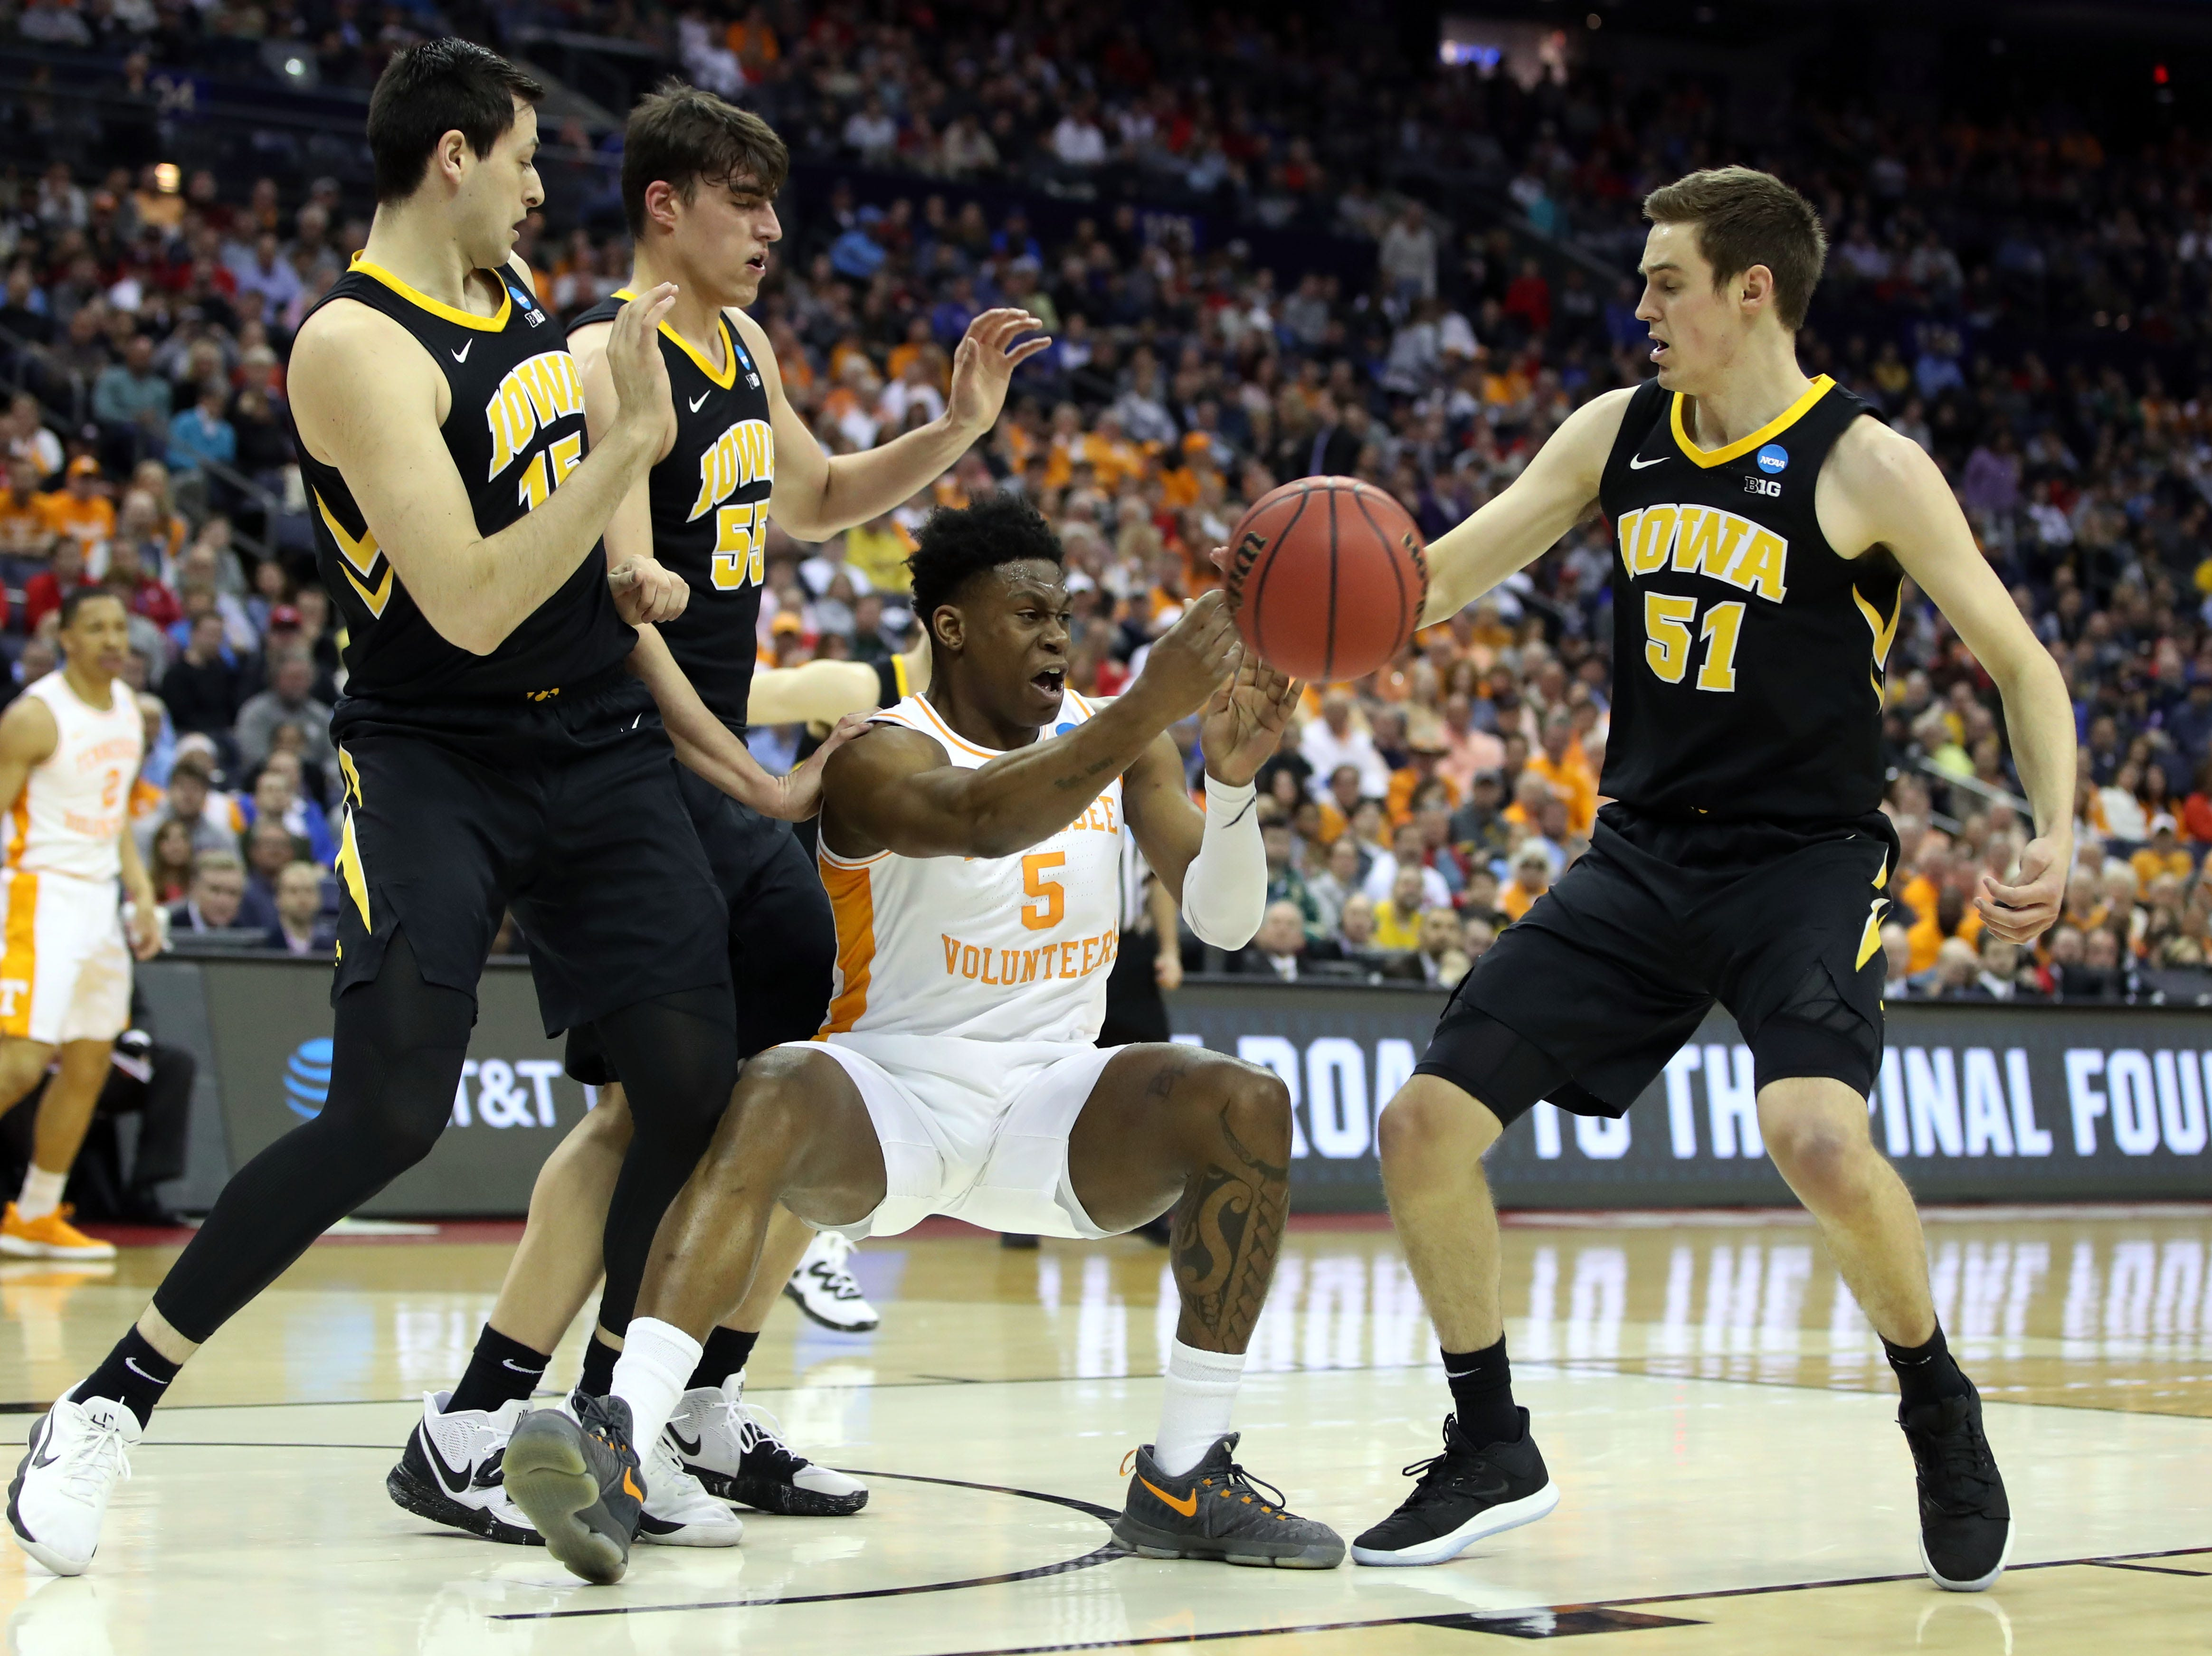 Tennessee Volunteers guard Admiral Schofield (5) passes the ball surrounded by Iowa Hawkeyes forward Ryan Kriener (15) forward Luka Garza (55) and forward Nicholas Baer (51) in the second round of the 2019 NCAA Tournament at Nationwide Arena.